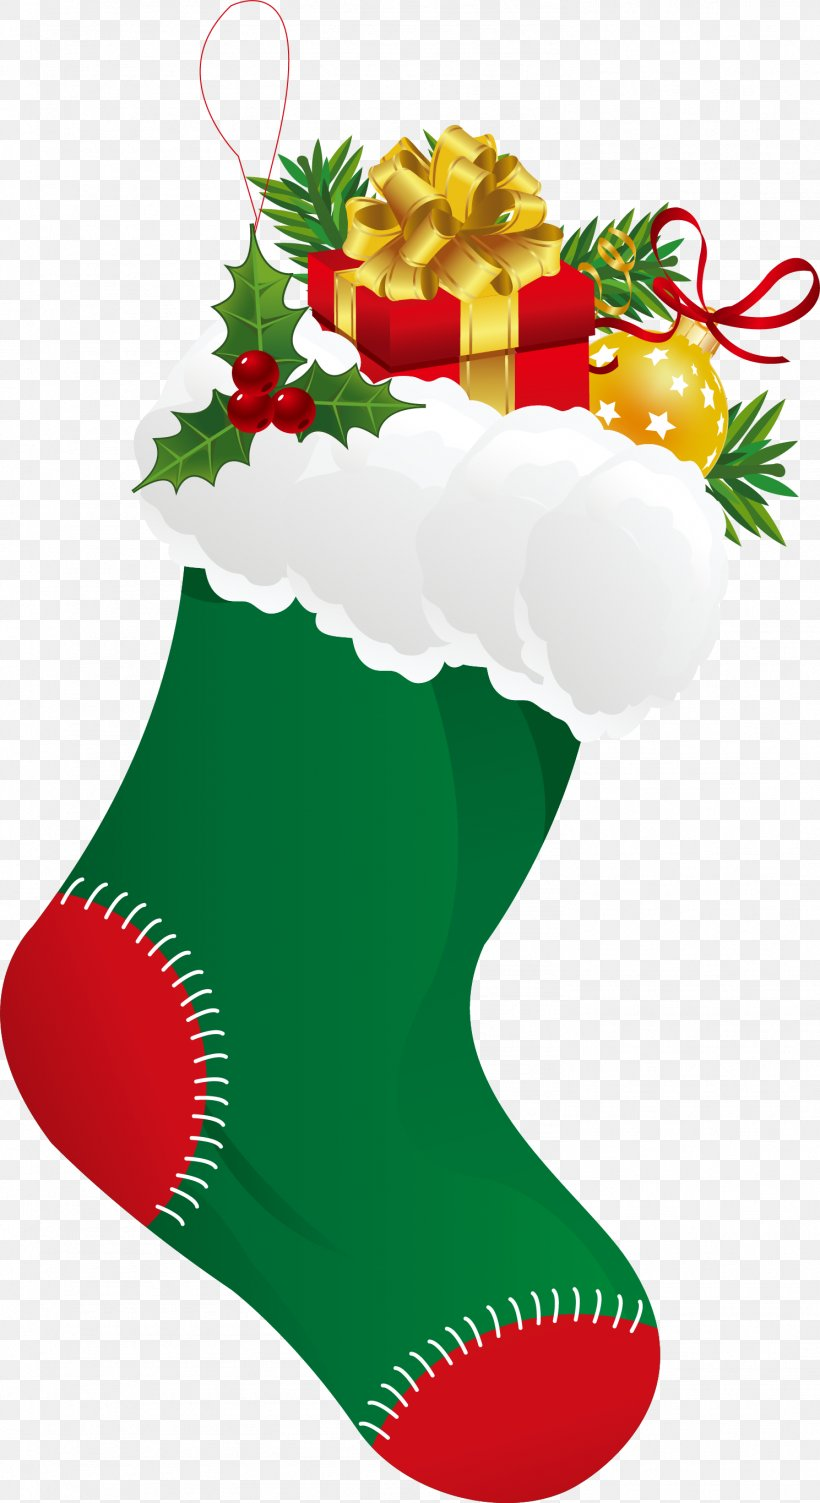 Christmas Stocking Sock Clip Art, PNG, 1489x2731px, Christmas Stockings, Christmas, Christmas Decoration, Christmas Ornament, Christmas Stocking Download Free